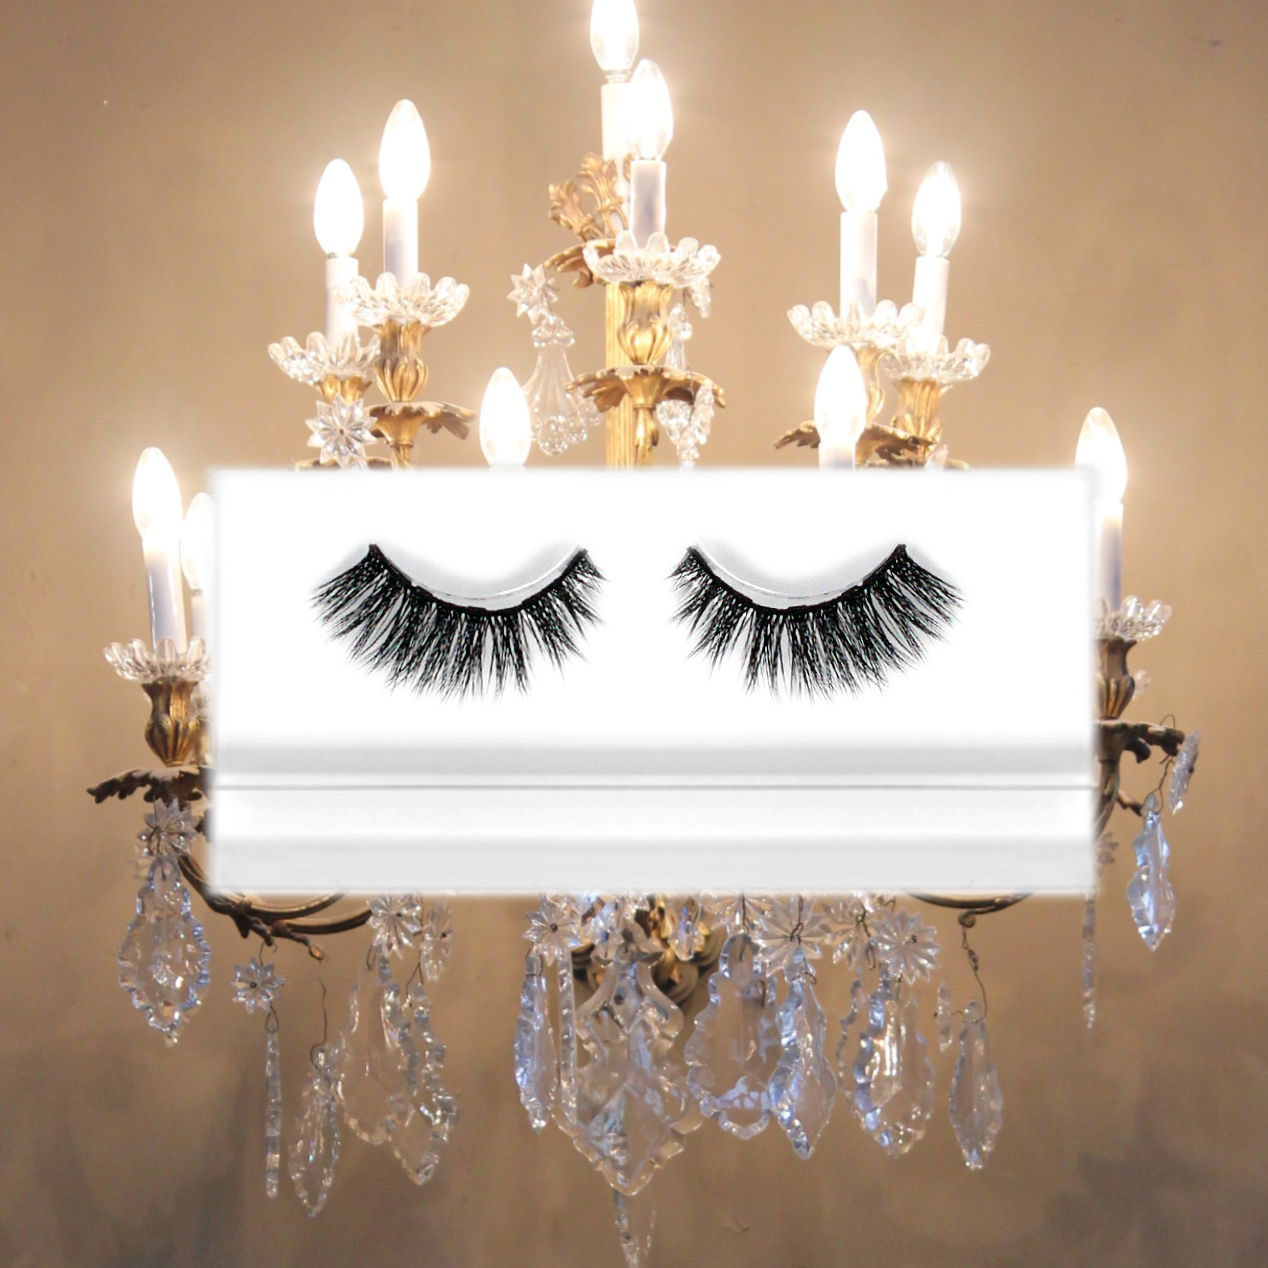 priceless flared cat-eye false lashes with fancy chandelier design